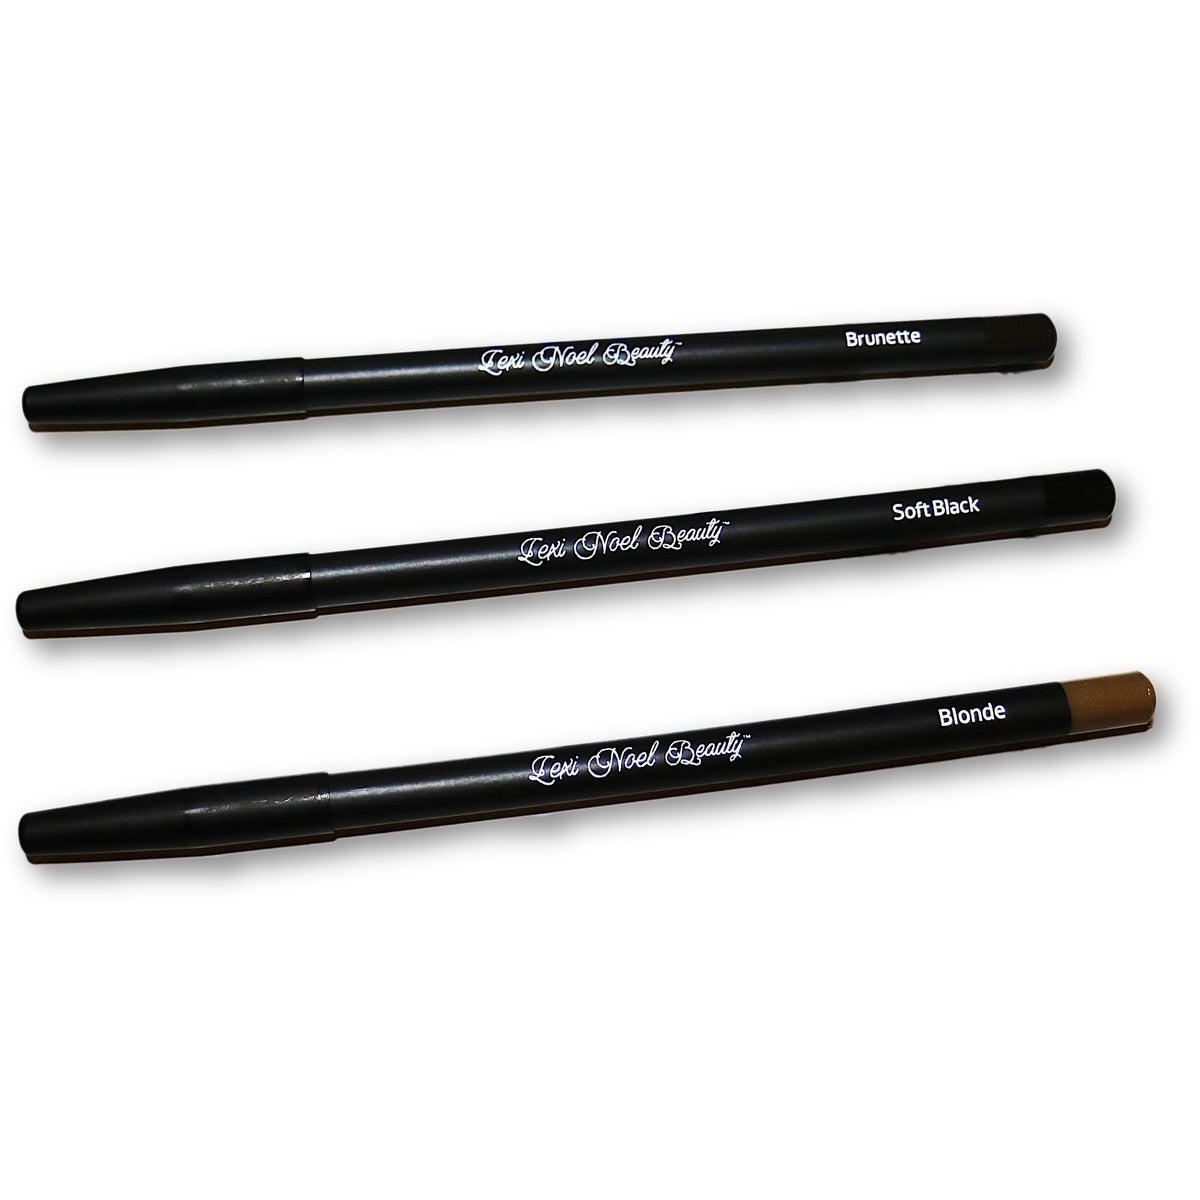 Lexi Noel Beauty Eyebrow Pencil - lexinoelbeauty.com